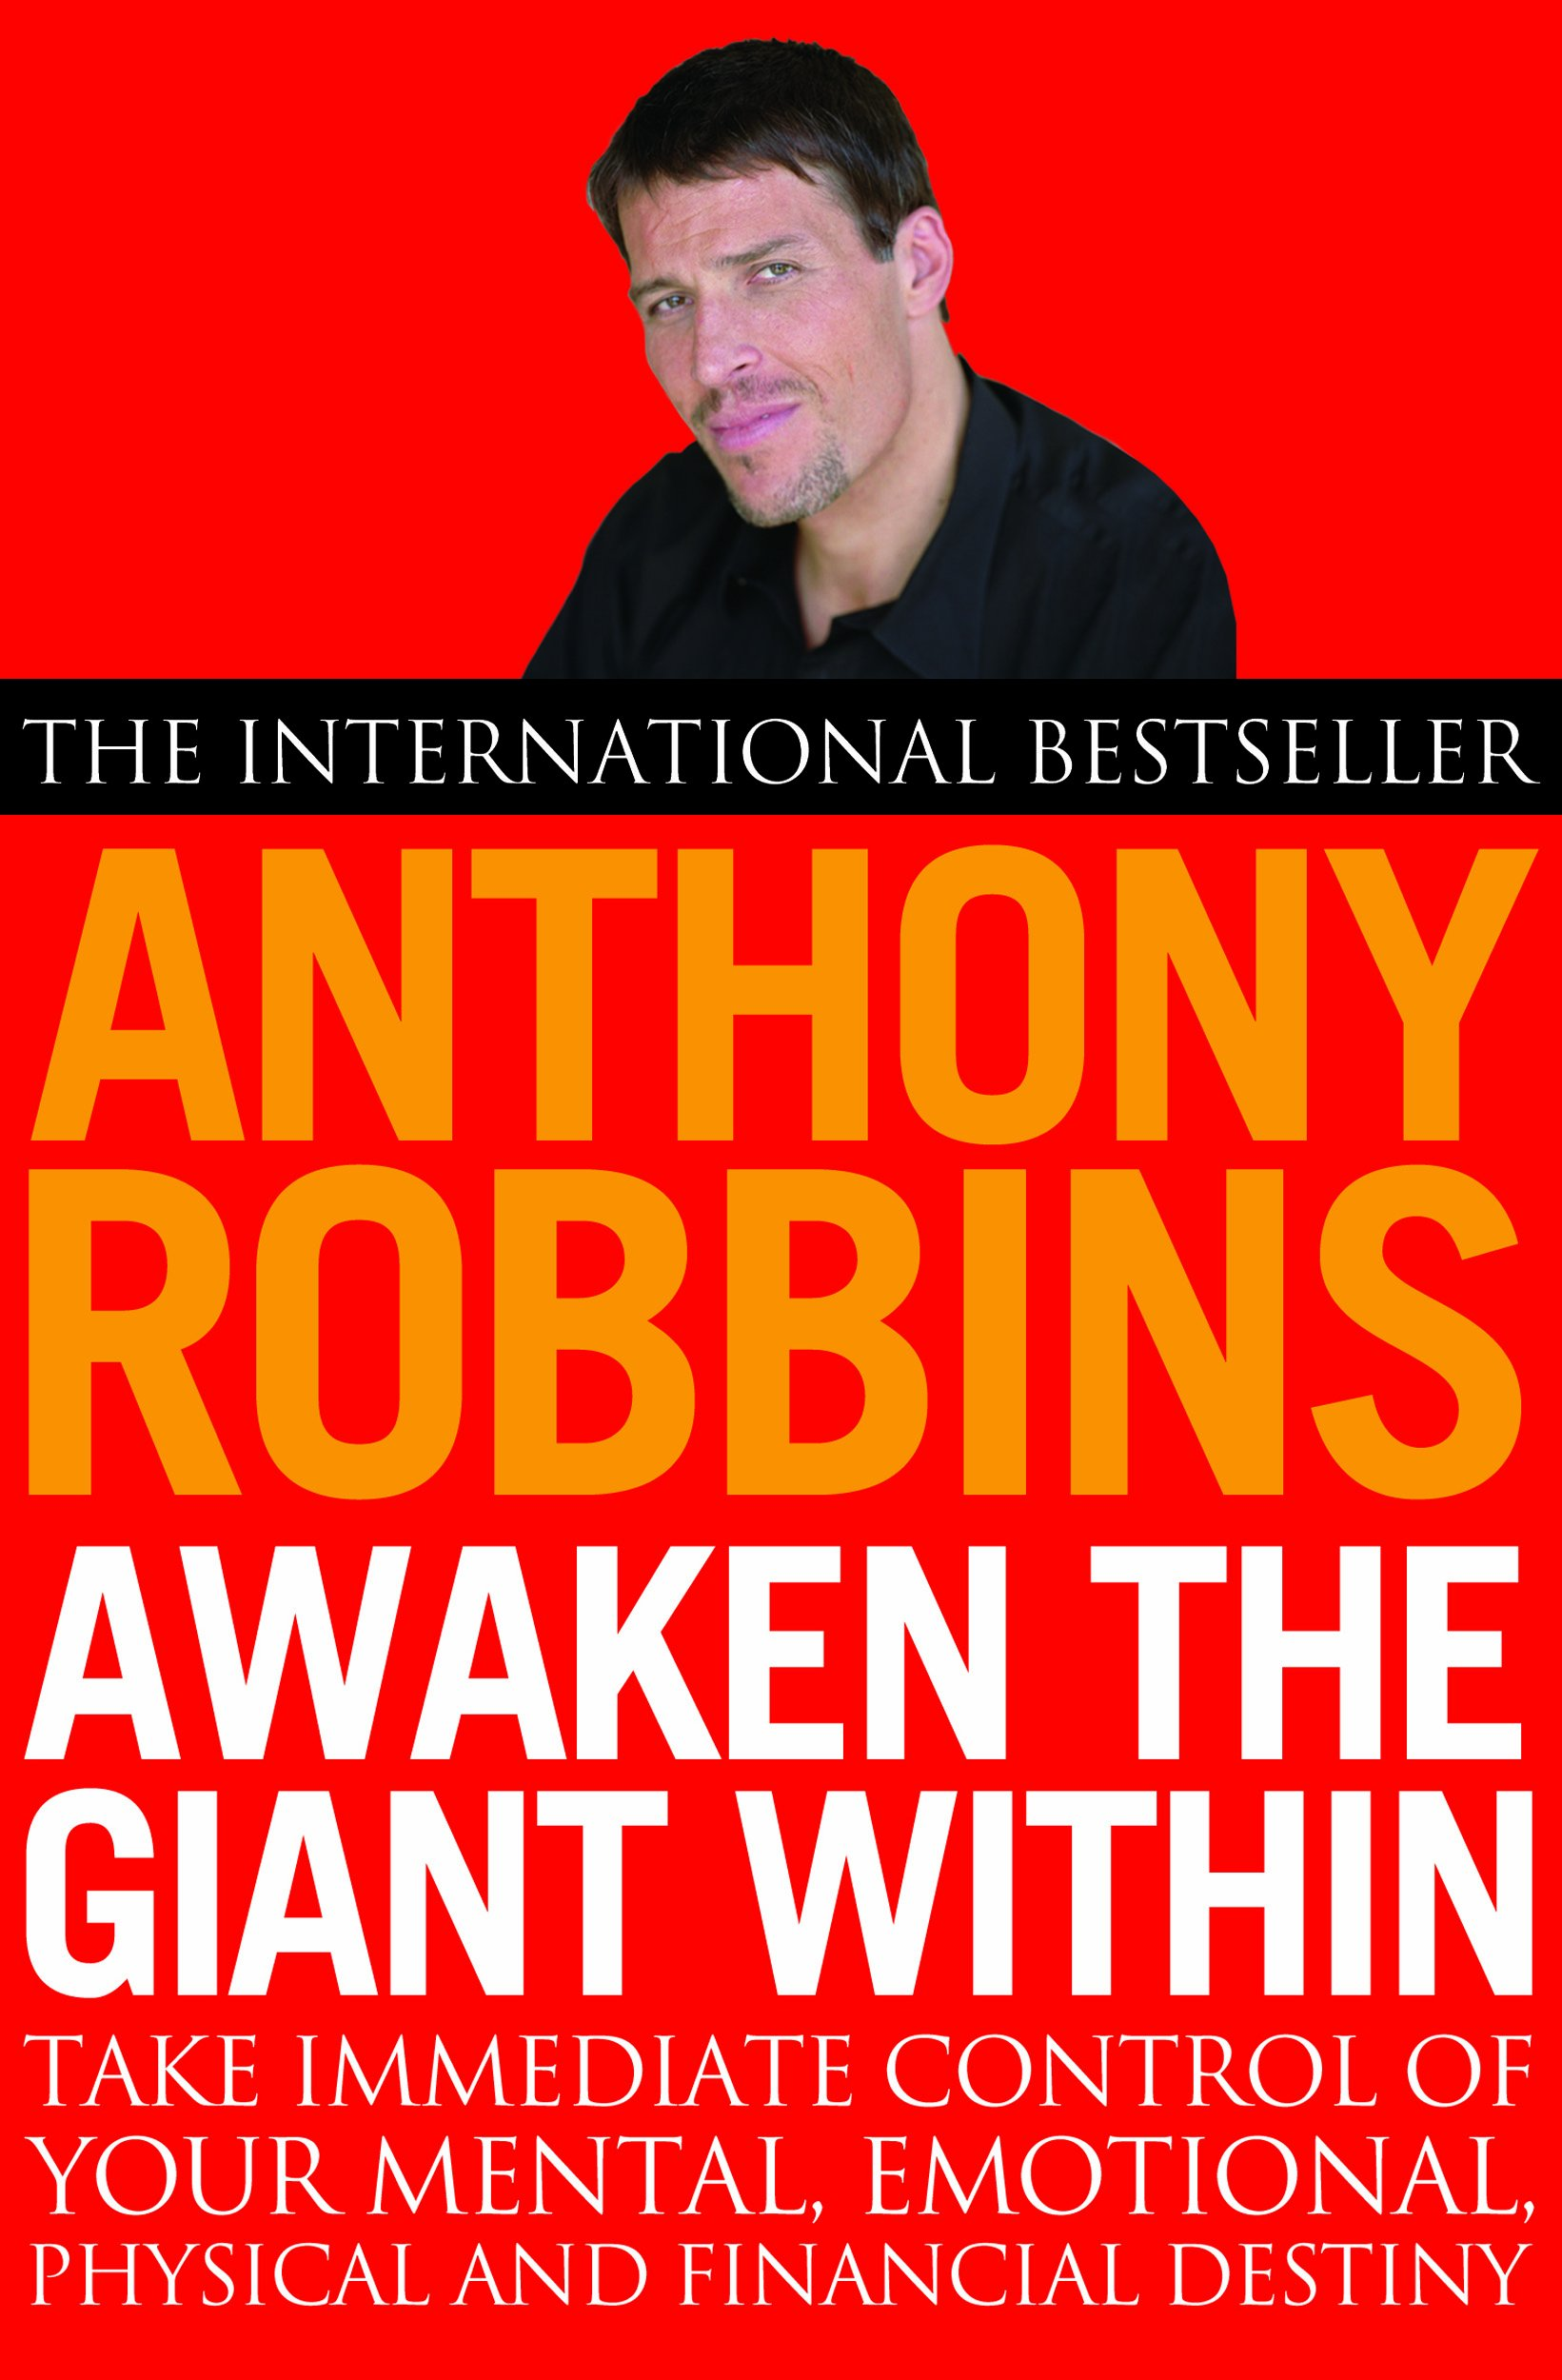 Awaken The Giant Within: How to Take Immediate Control of Your Mental, Emotional, Physical and Financial Life: Amazon.co.uk: Robbins, Tony: 9780743409384: Books